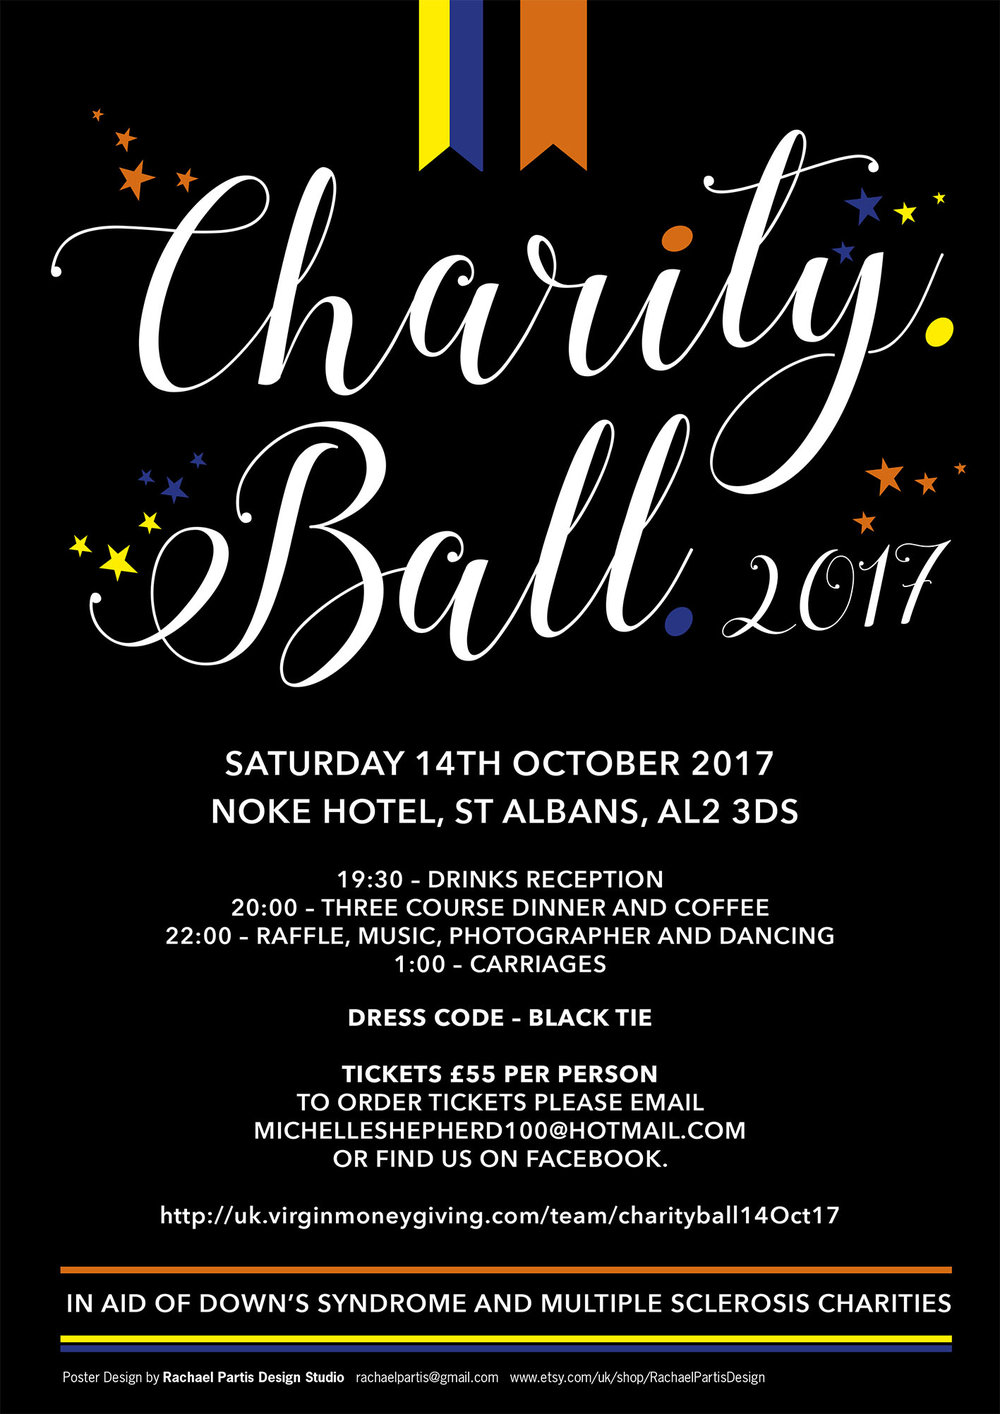 Charity Ball poster - Copy.jpg